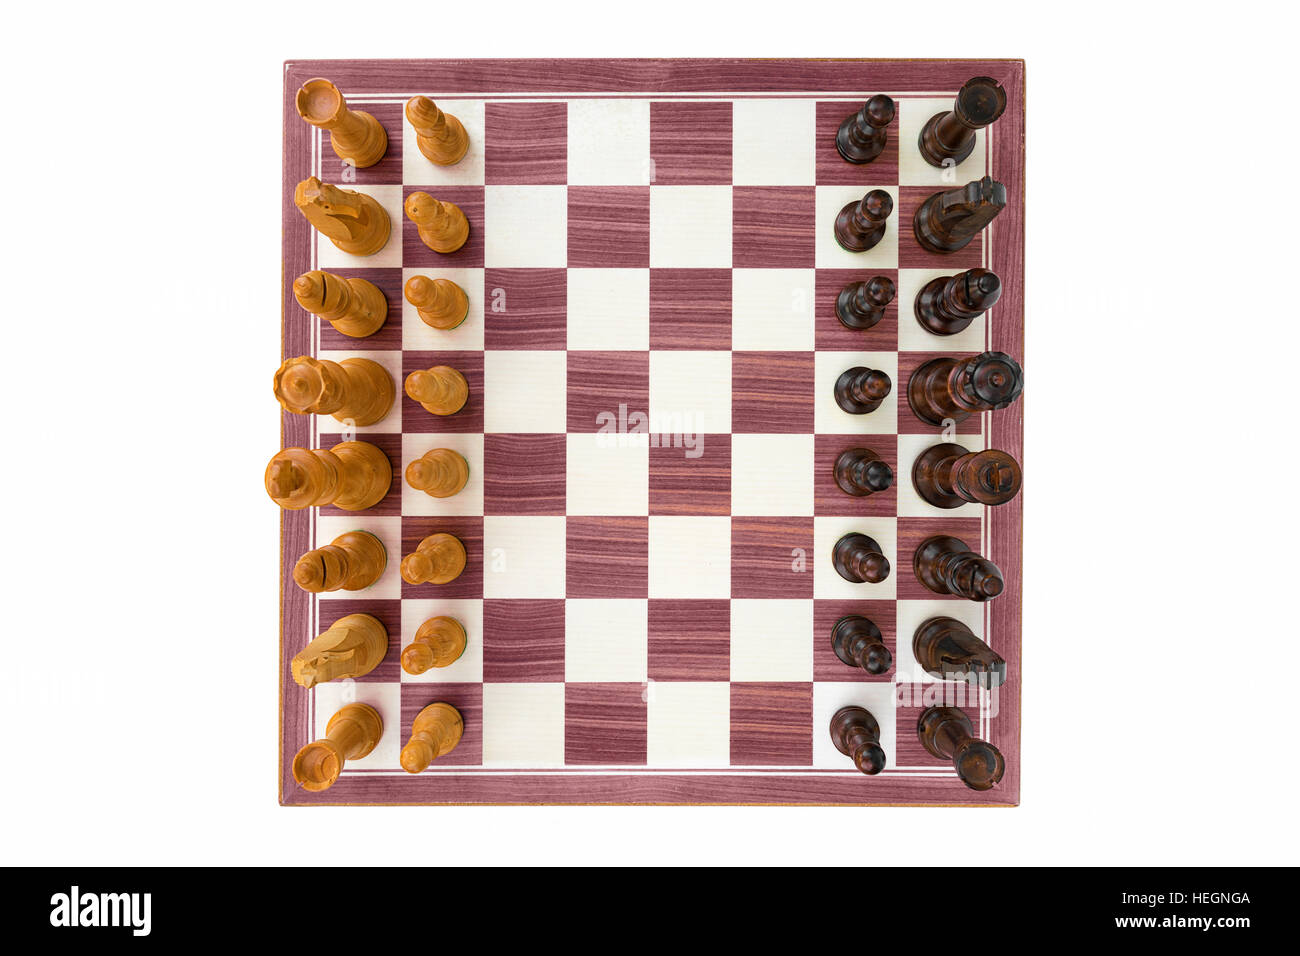 boxwood chessboard with all pieces on white background wide angle shot - Stock Image